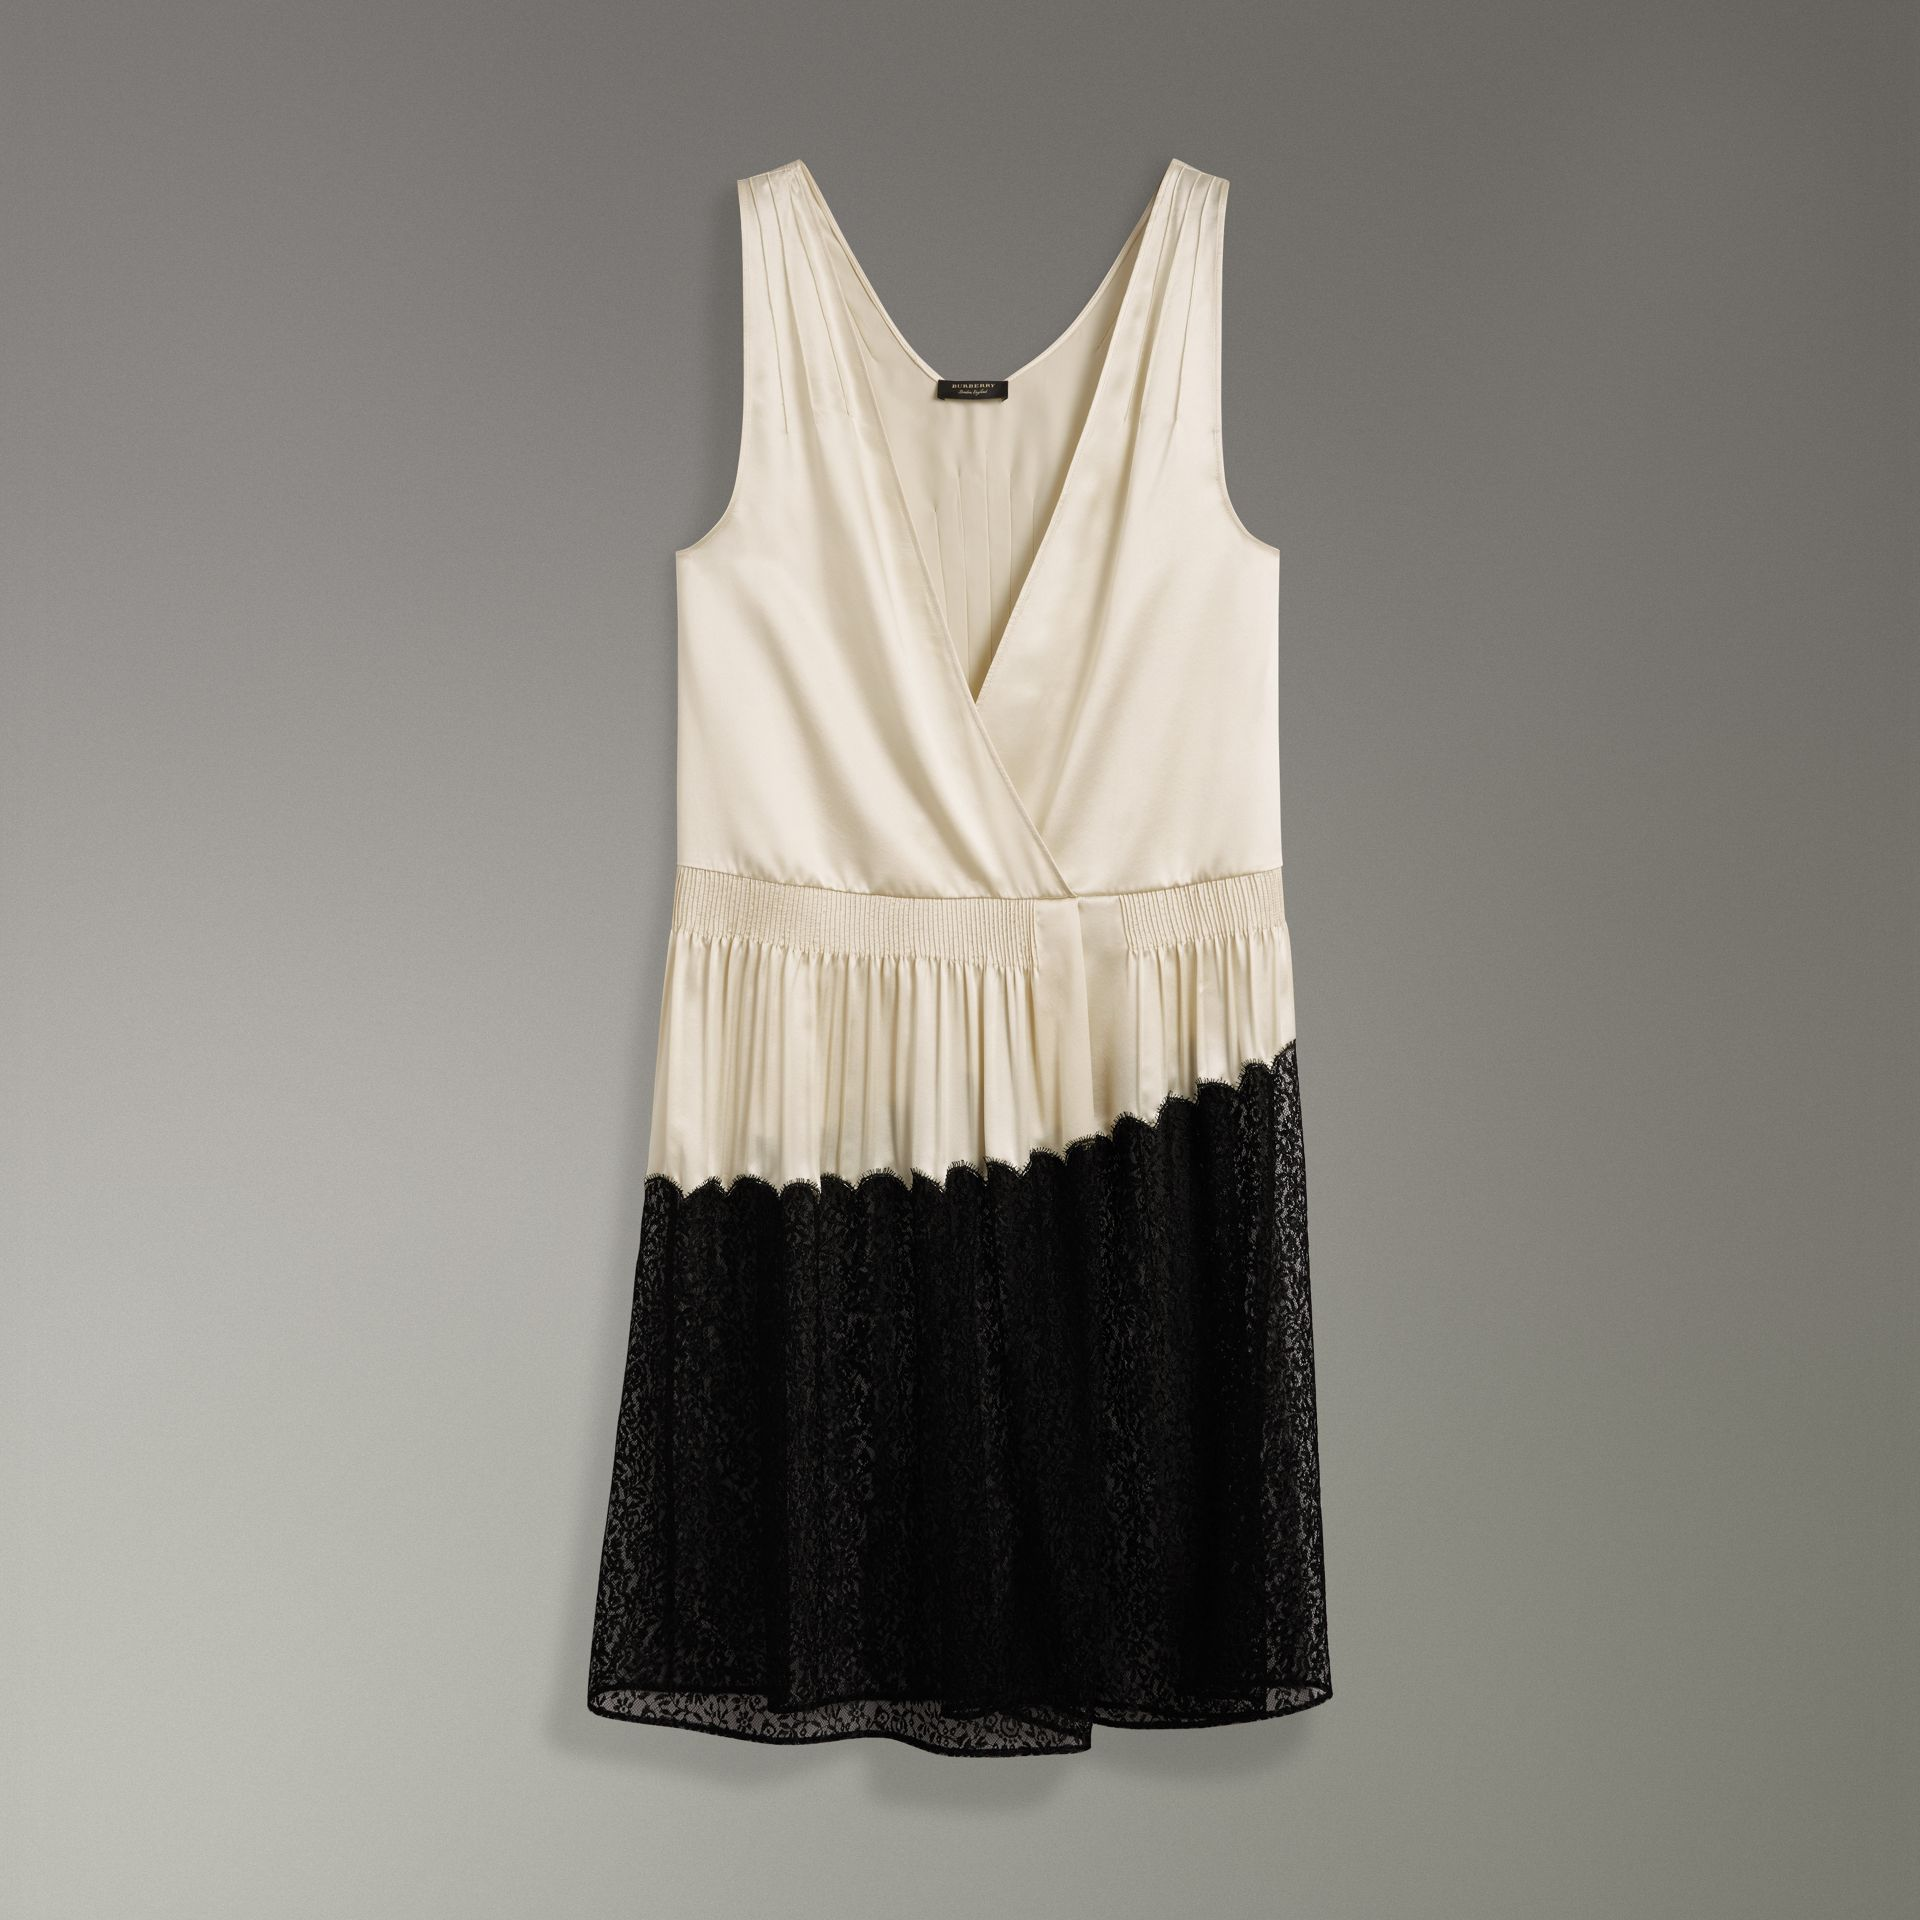 Silk Satin and Lace Sleeveless Dress in Cream - Women | Burberry - gallery image 3